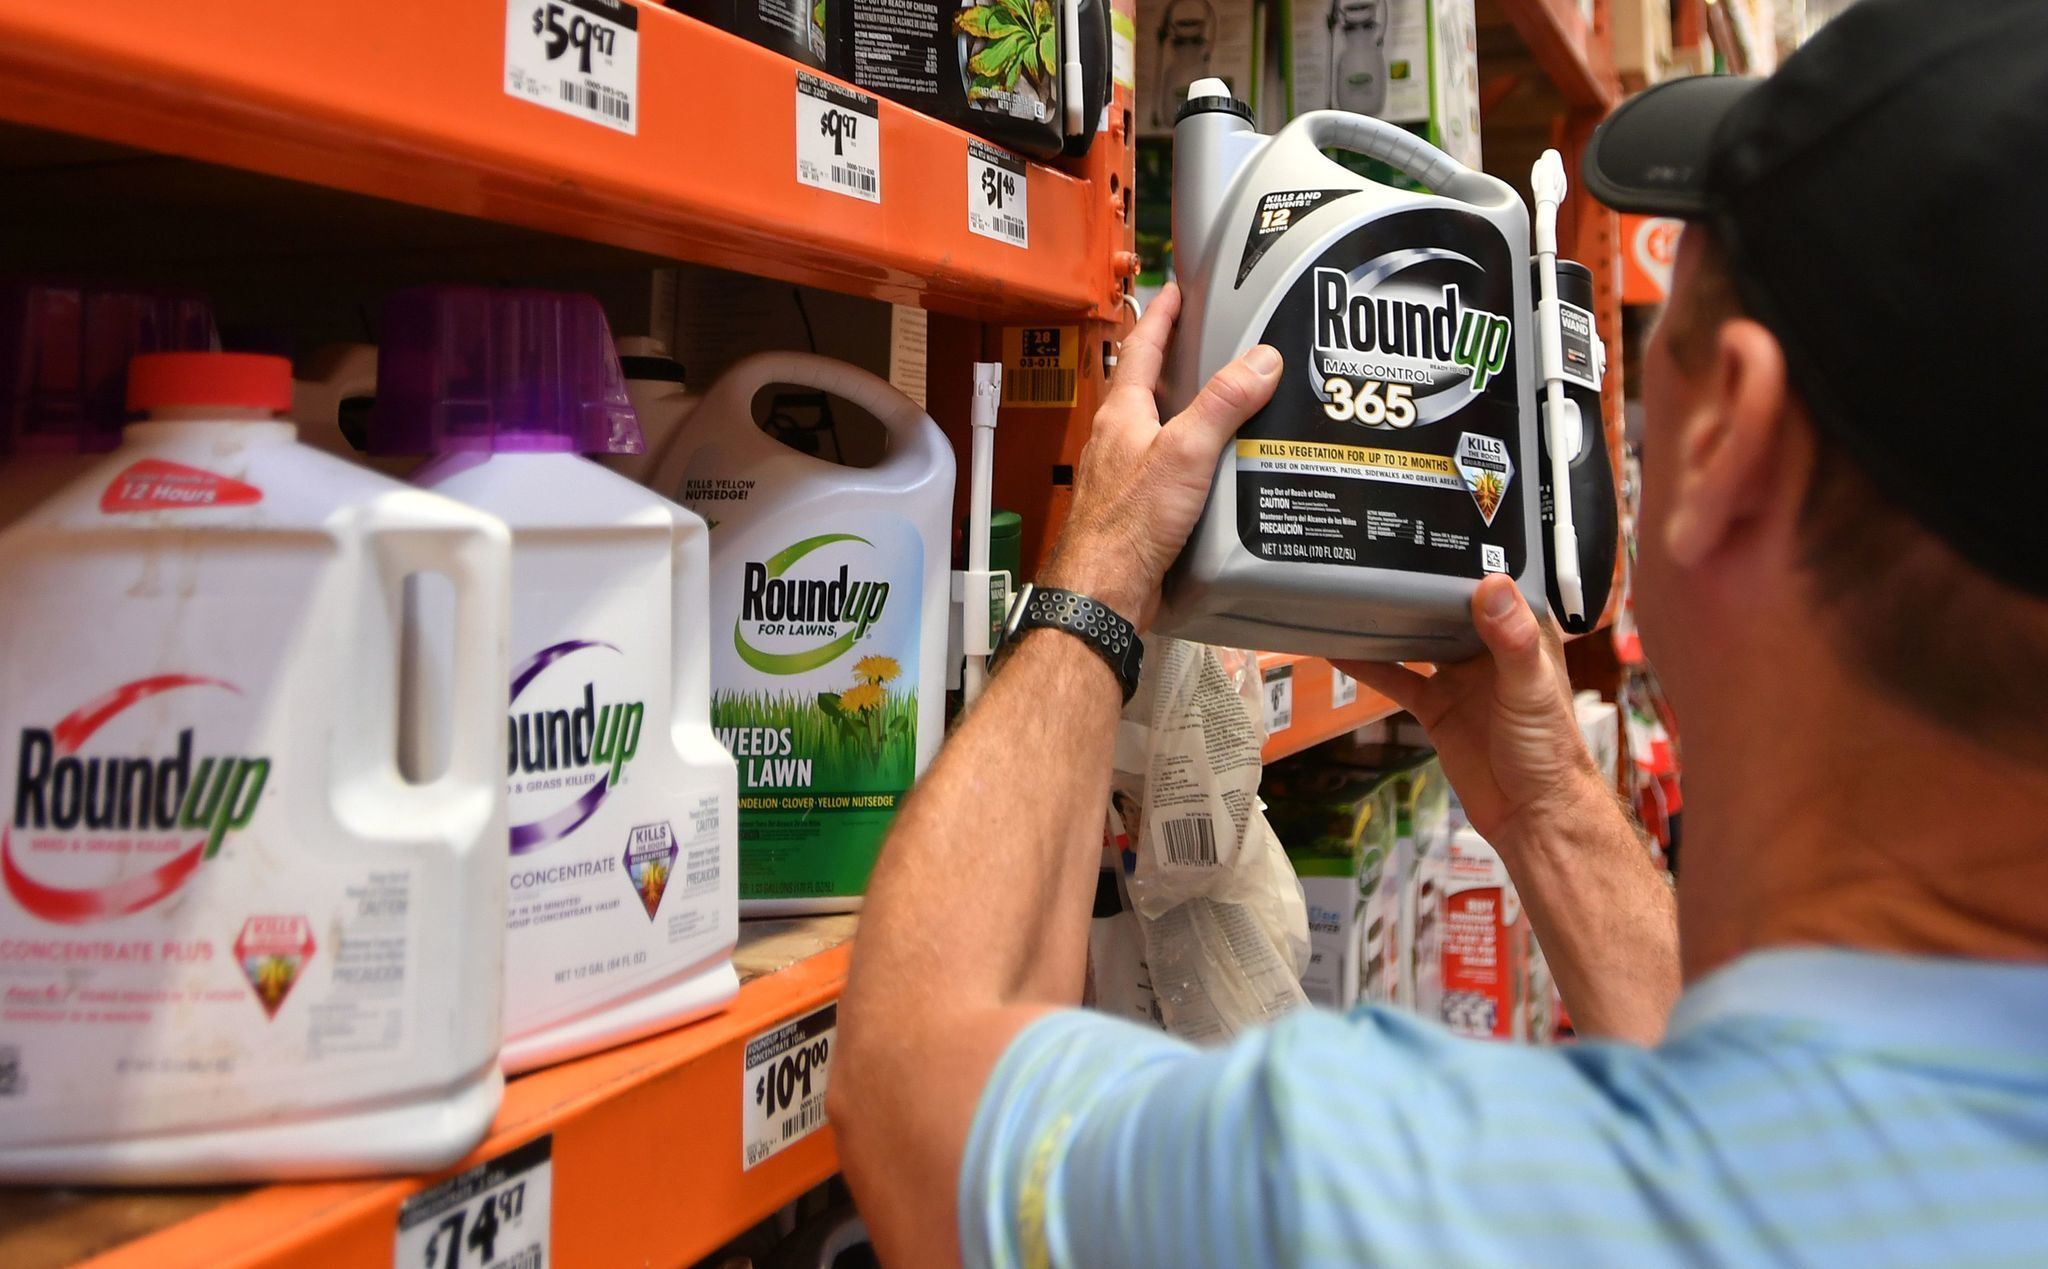 Report: Oatmeal, breakfast foods contain potentially unsafe amounts of weed killer